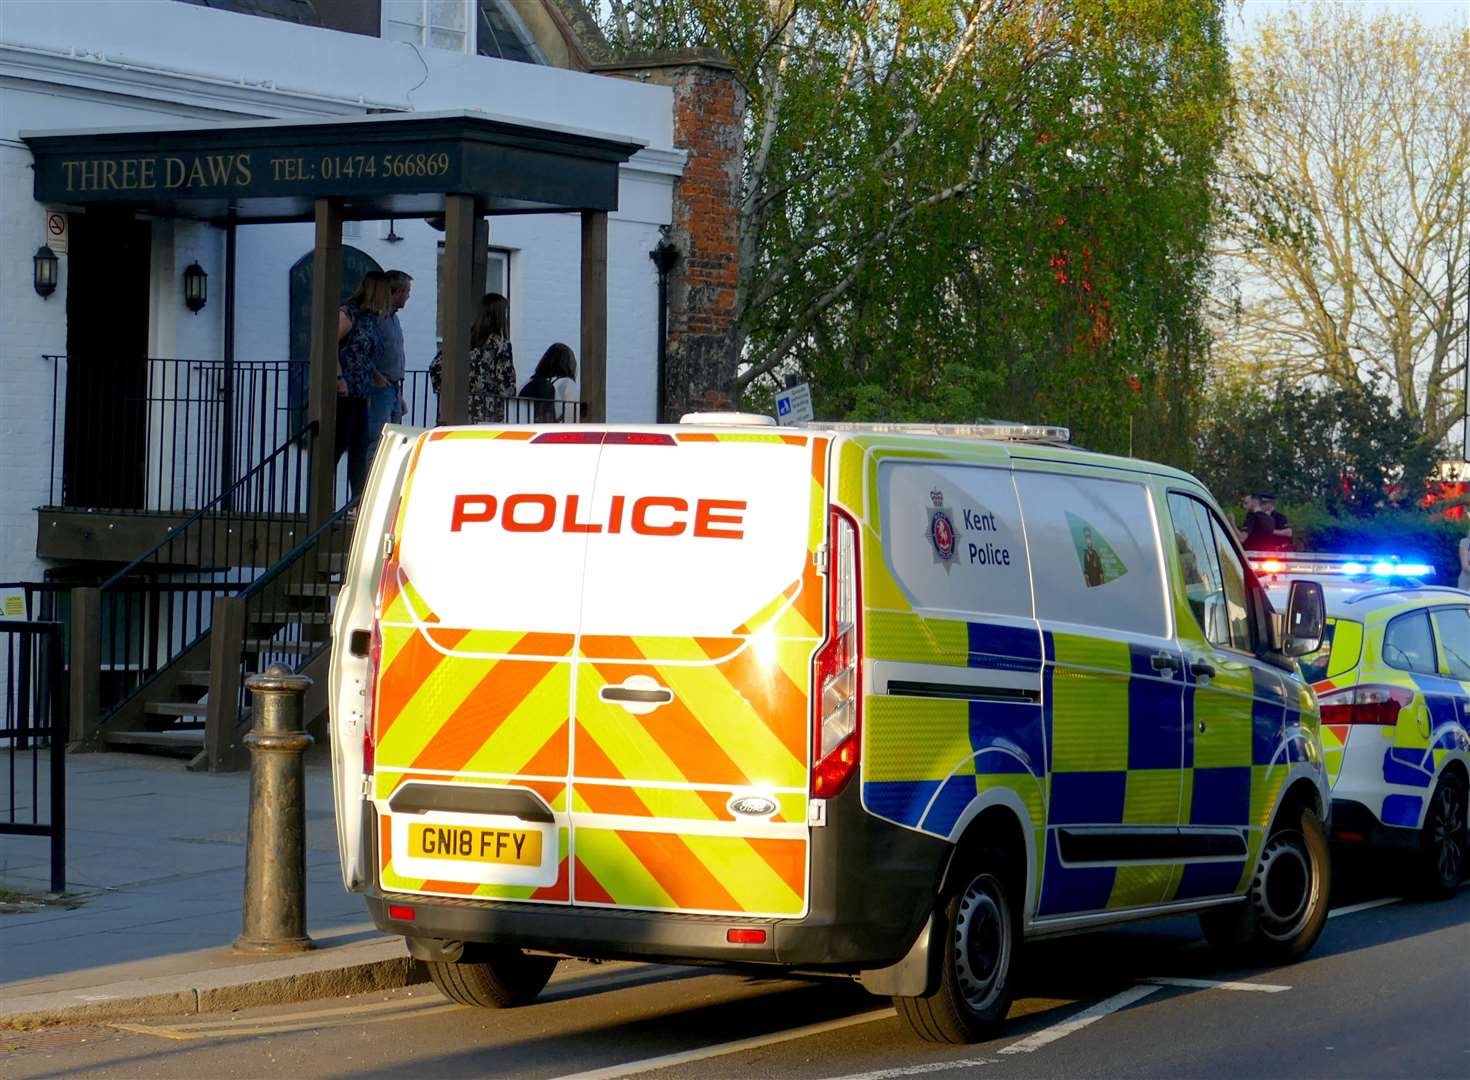 Police were called to the Three Daws pub in Gravesend (8899259)